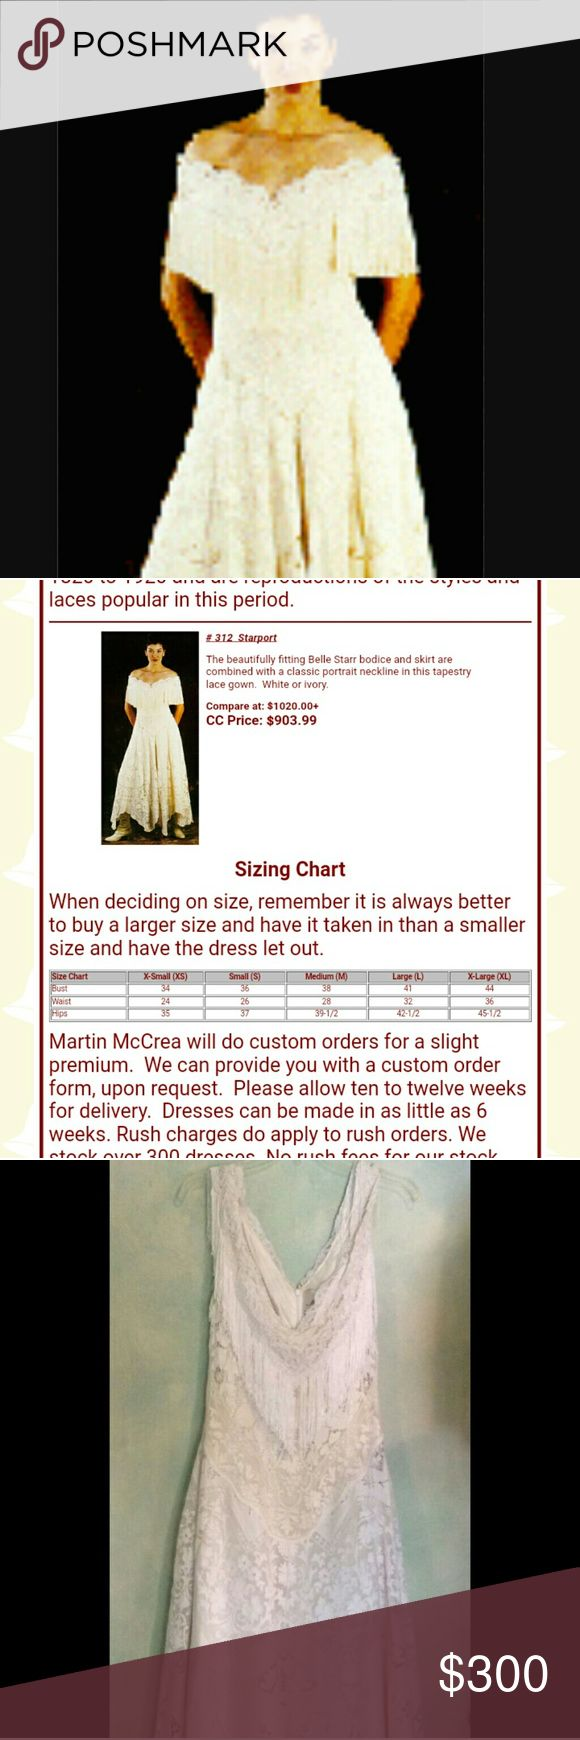 MARTIN MCCREA WESTERN WEDDING GOWN SIZE 2X WORN ONCE FOR WEDDING HANGING IN MY CLOSET TO LONG THIS DRESS IS SLIGHTLY HEAVY FOR ARIZONA BUT GOOD FOR WINTER WEDDING THIS CAN ALSO BE WORN FOR OTHER OCCASIONS AS WELL ....IF YOU LIKE IT MAKE AN OFFER Martin McCrea Dresses Wedding